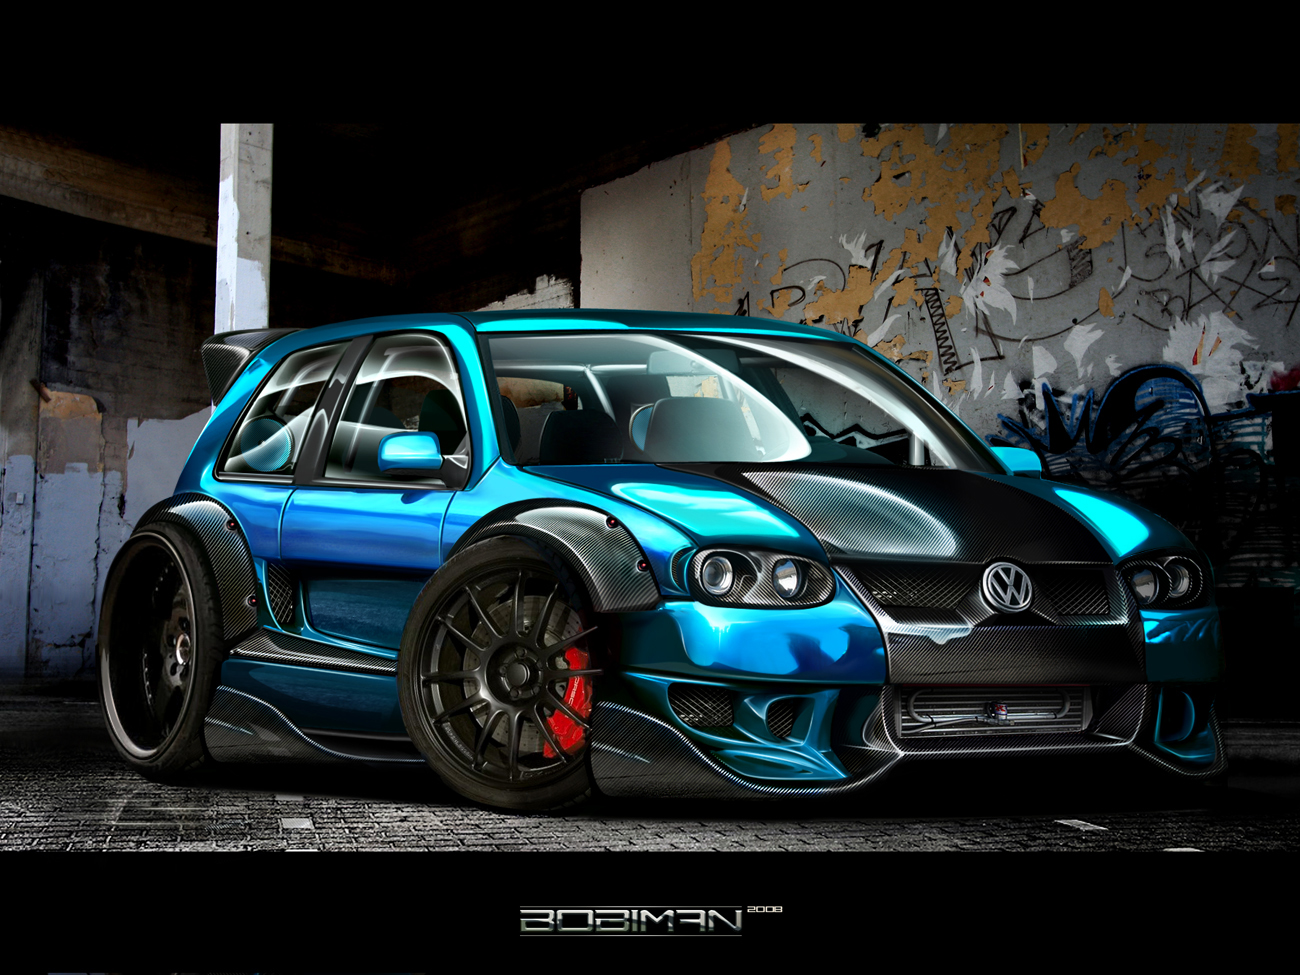 Wallpapers Facebook Cover Animated Car Wallpaper cool cars wallpapers 1300x975